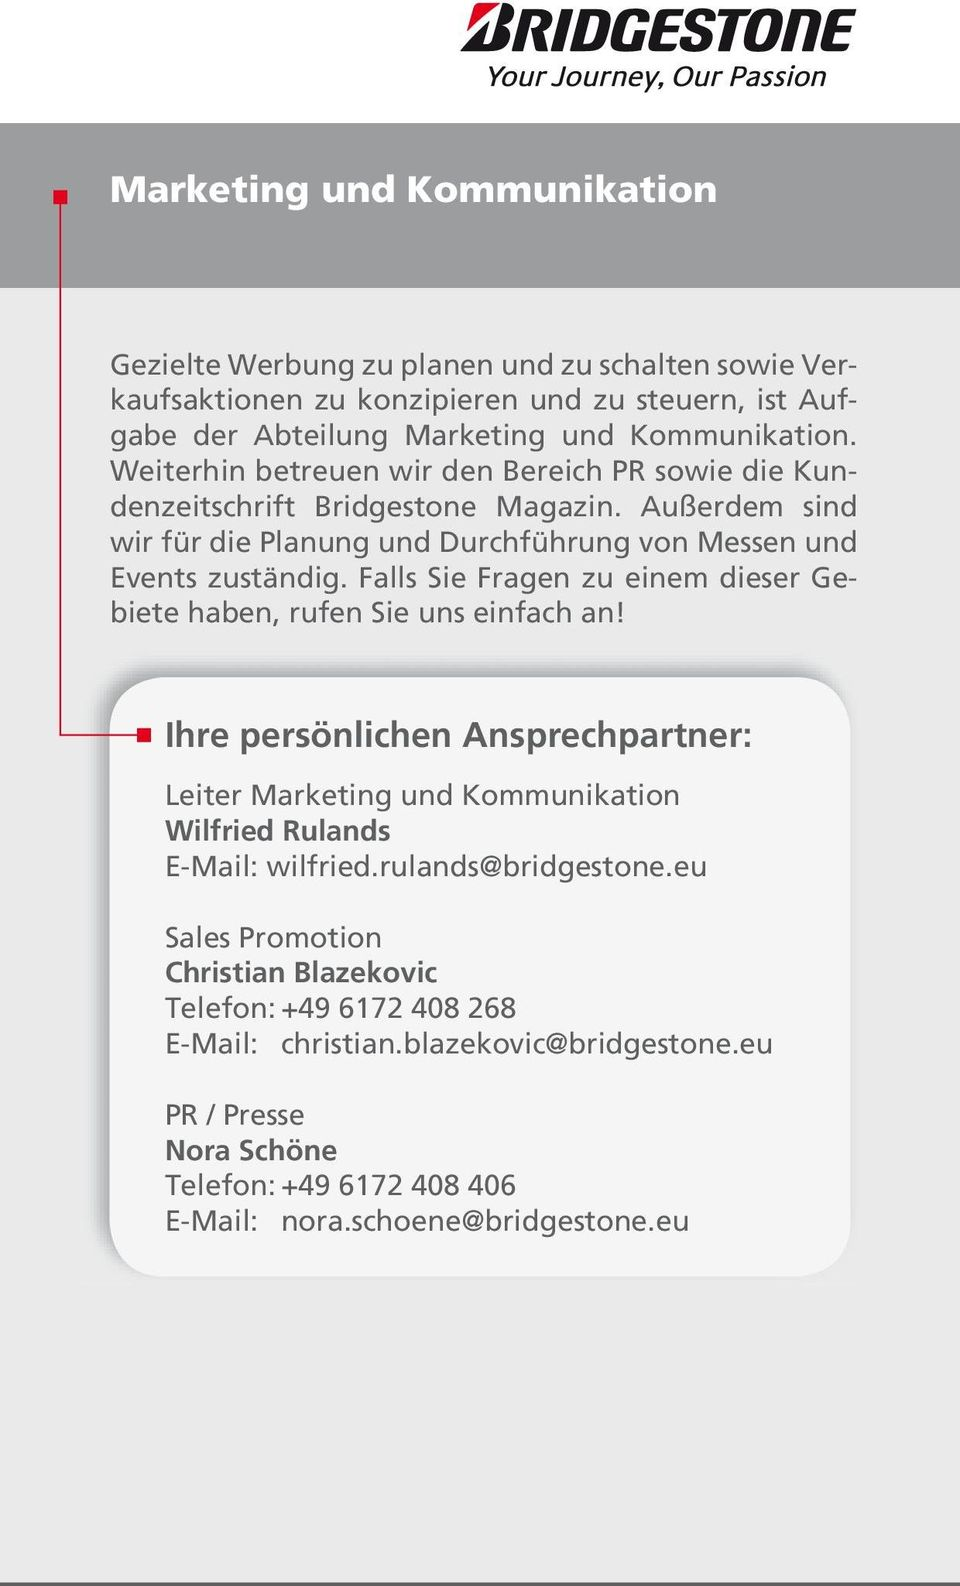 Falls Sie Fragen zu einem dieser Gebiete haben, rufen Sie uns einfach an! Leiter Marketing und Kommunikation Wilfried Rulands E-Mail: wilfried.rulands@bridgestone.